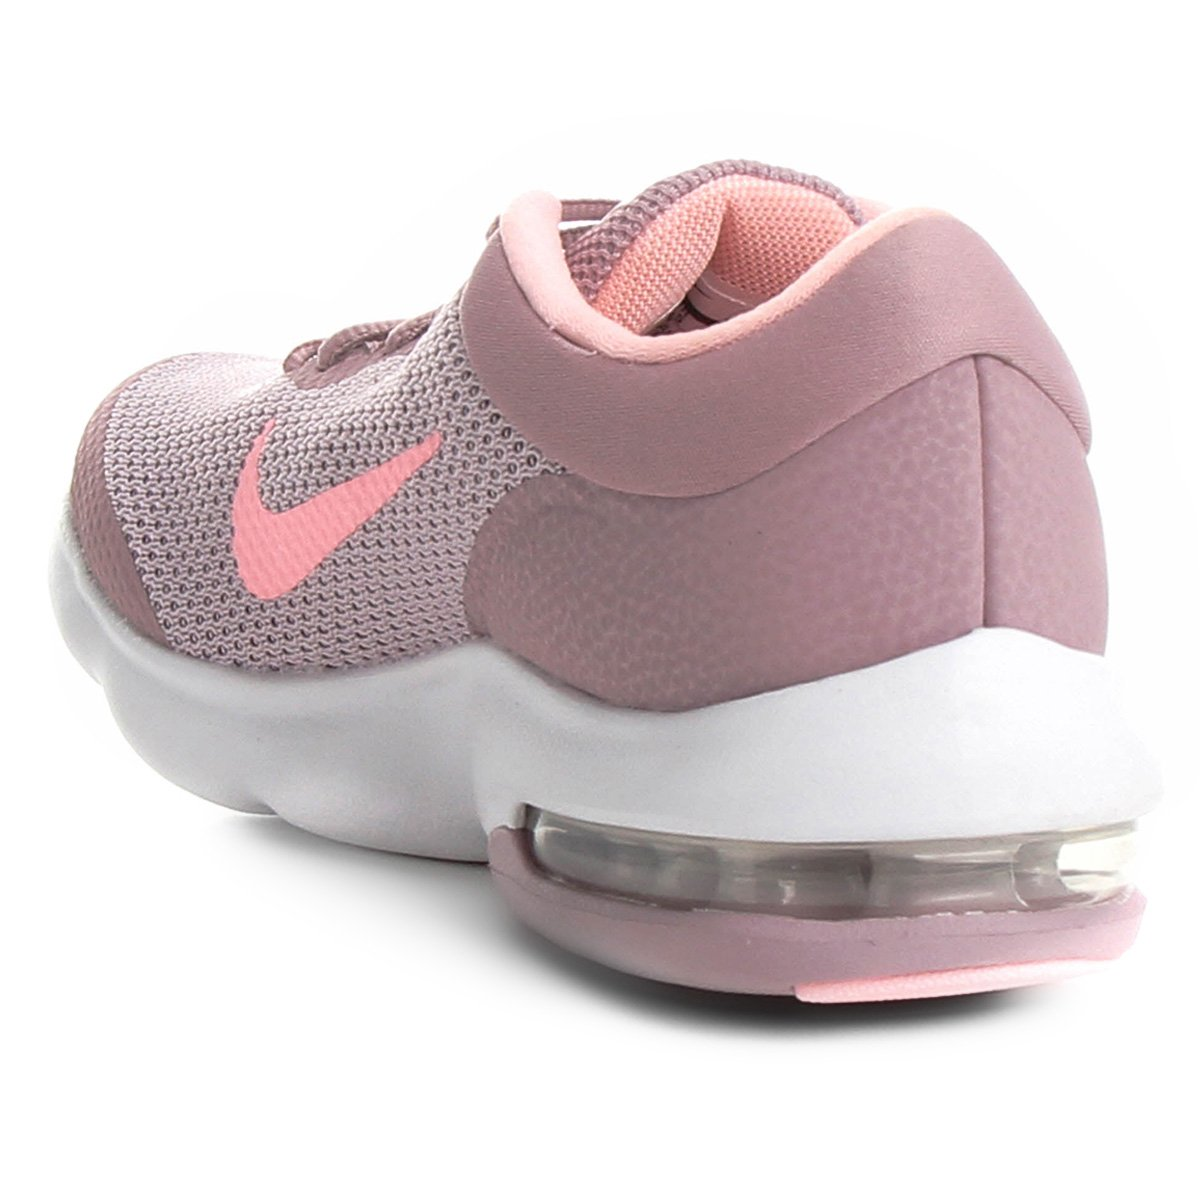 Cheap Nike Free Run Shoes For Women - Musée des impressionnismes Giverny 37b6aac7ca81f